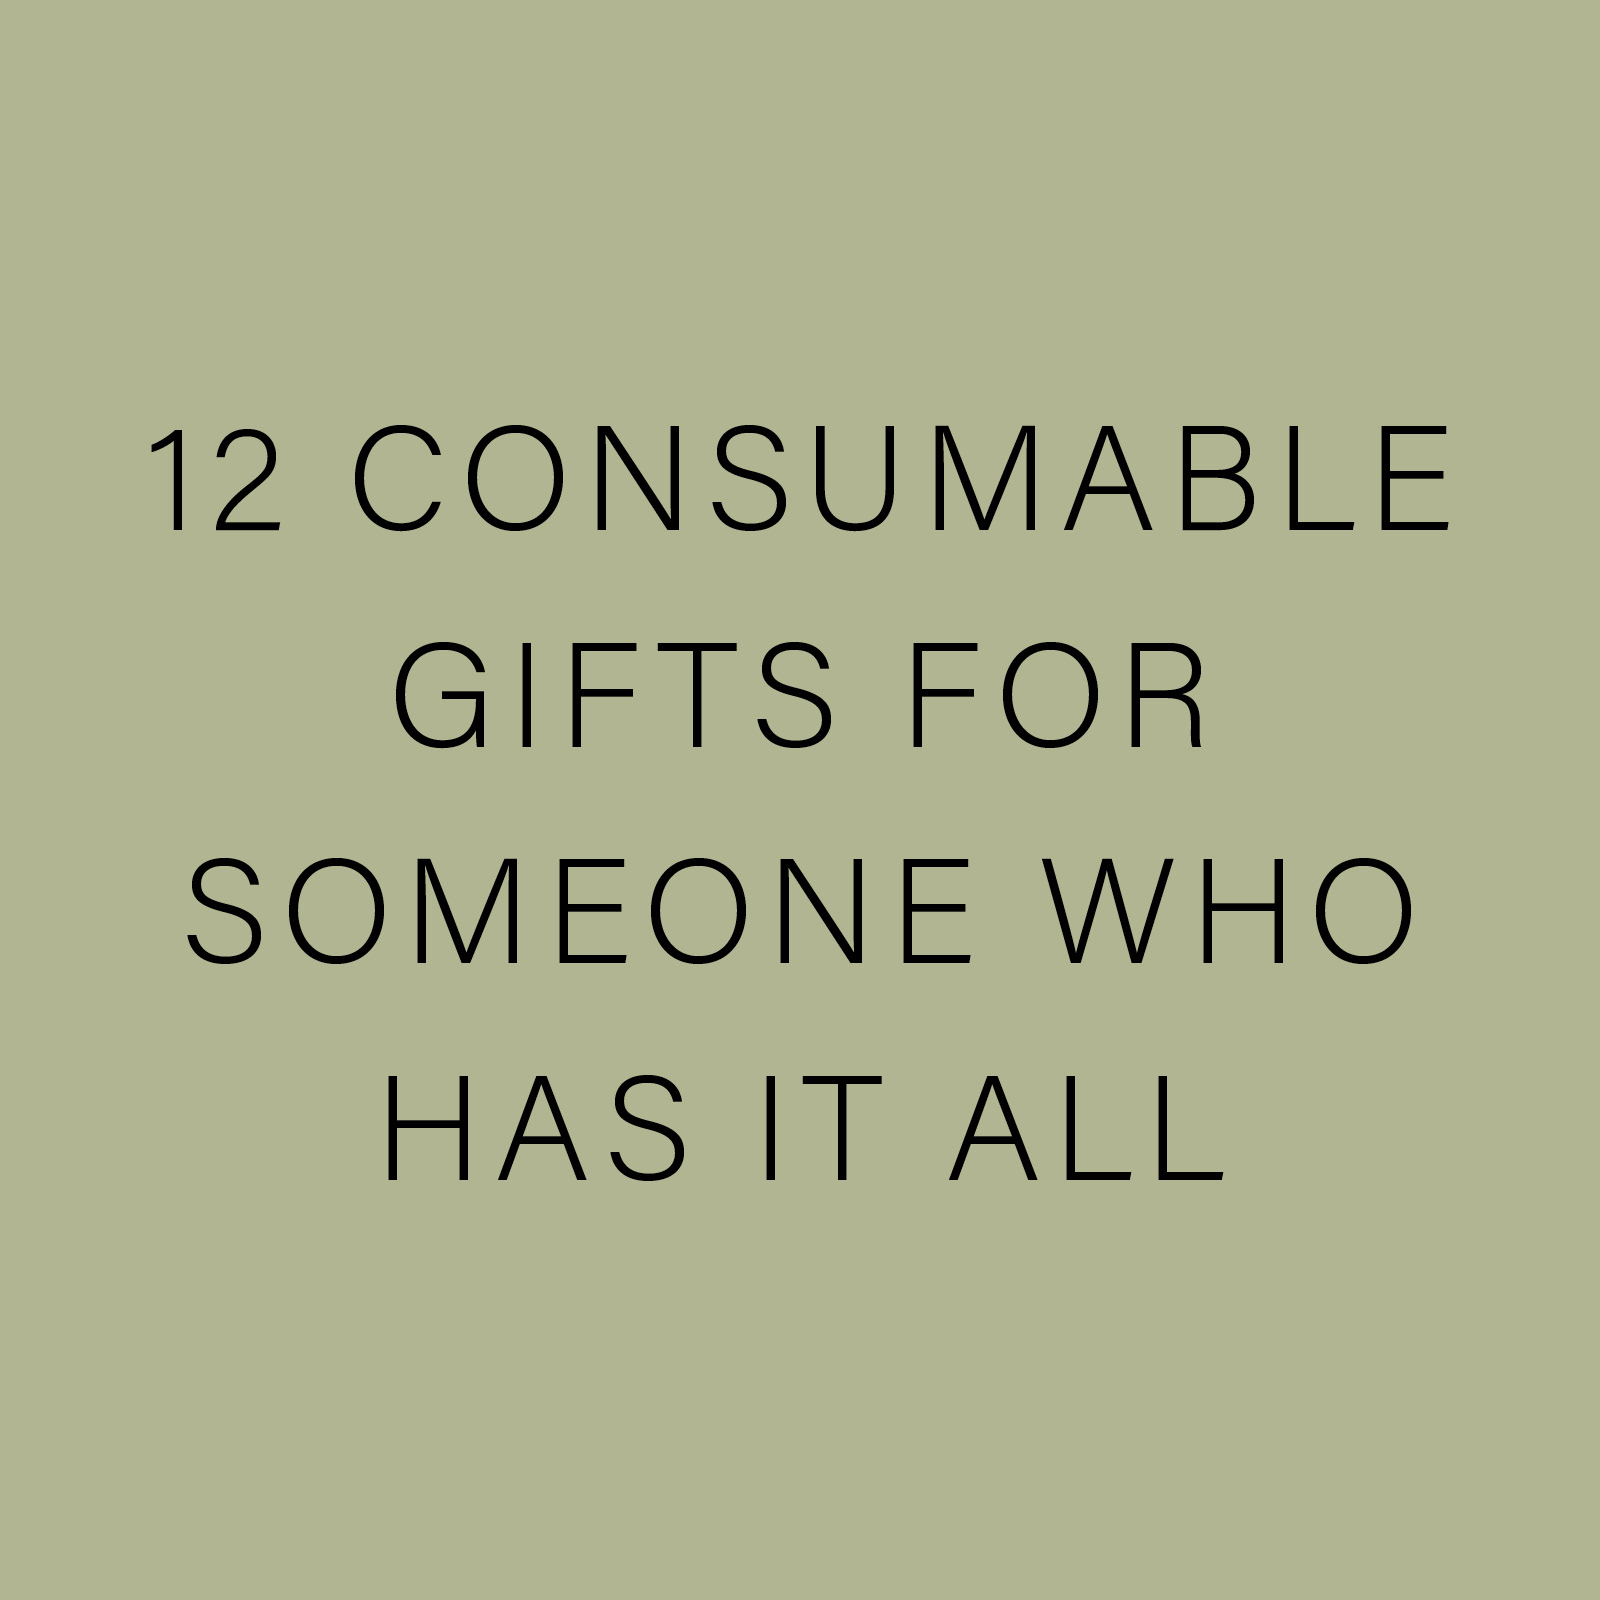 12 CONSUMABLE GIFTS FOR SOMEONE WHO HAS IT ALL.jpg